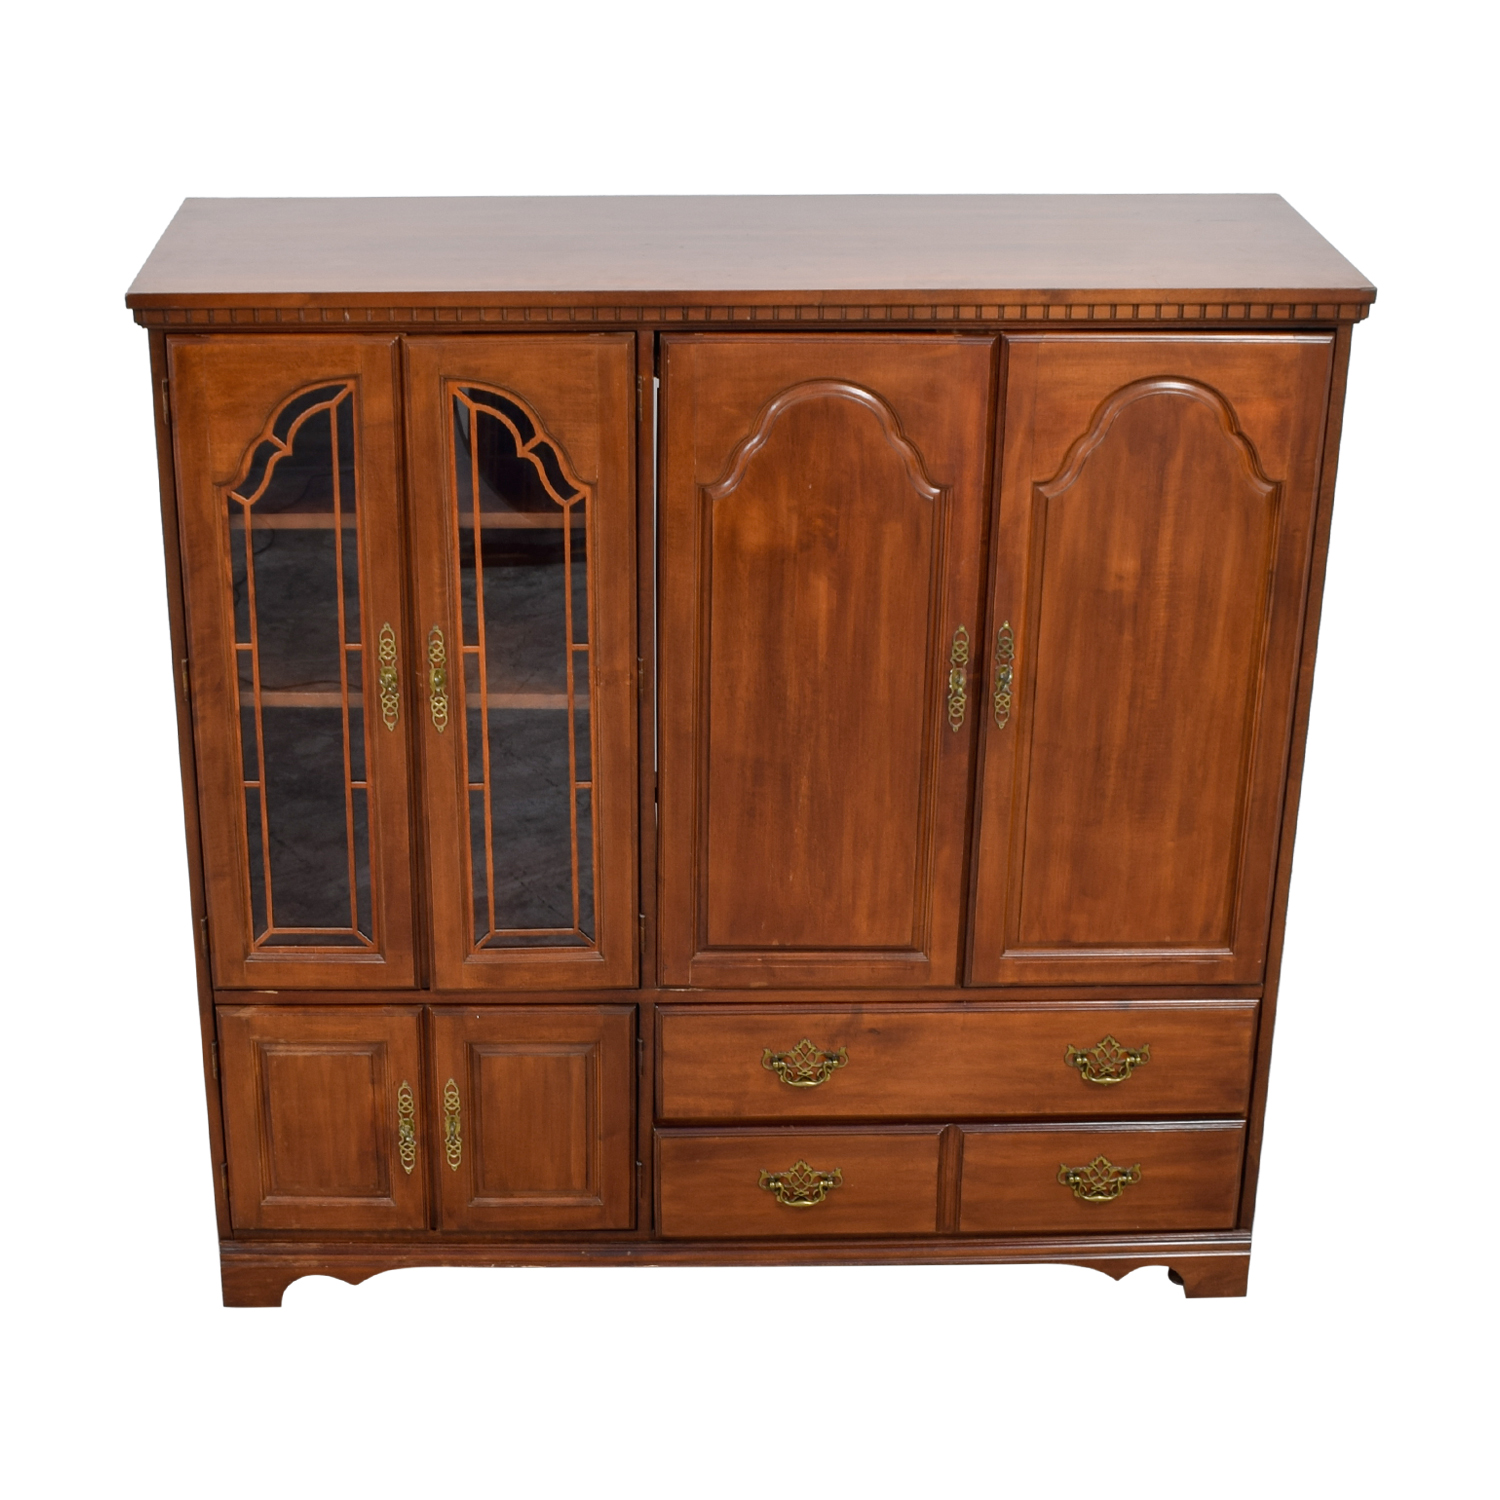 buy JC Penney JC Penney Wood Media Storage Cabinet online